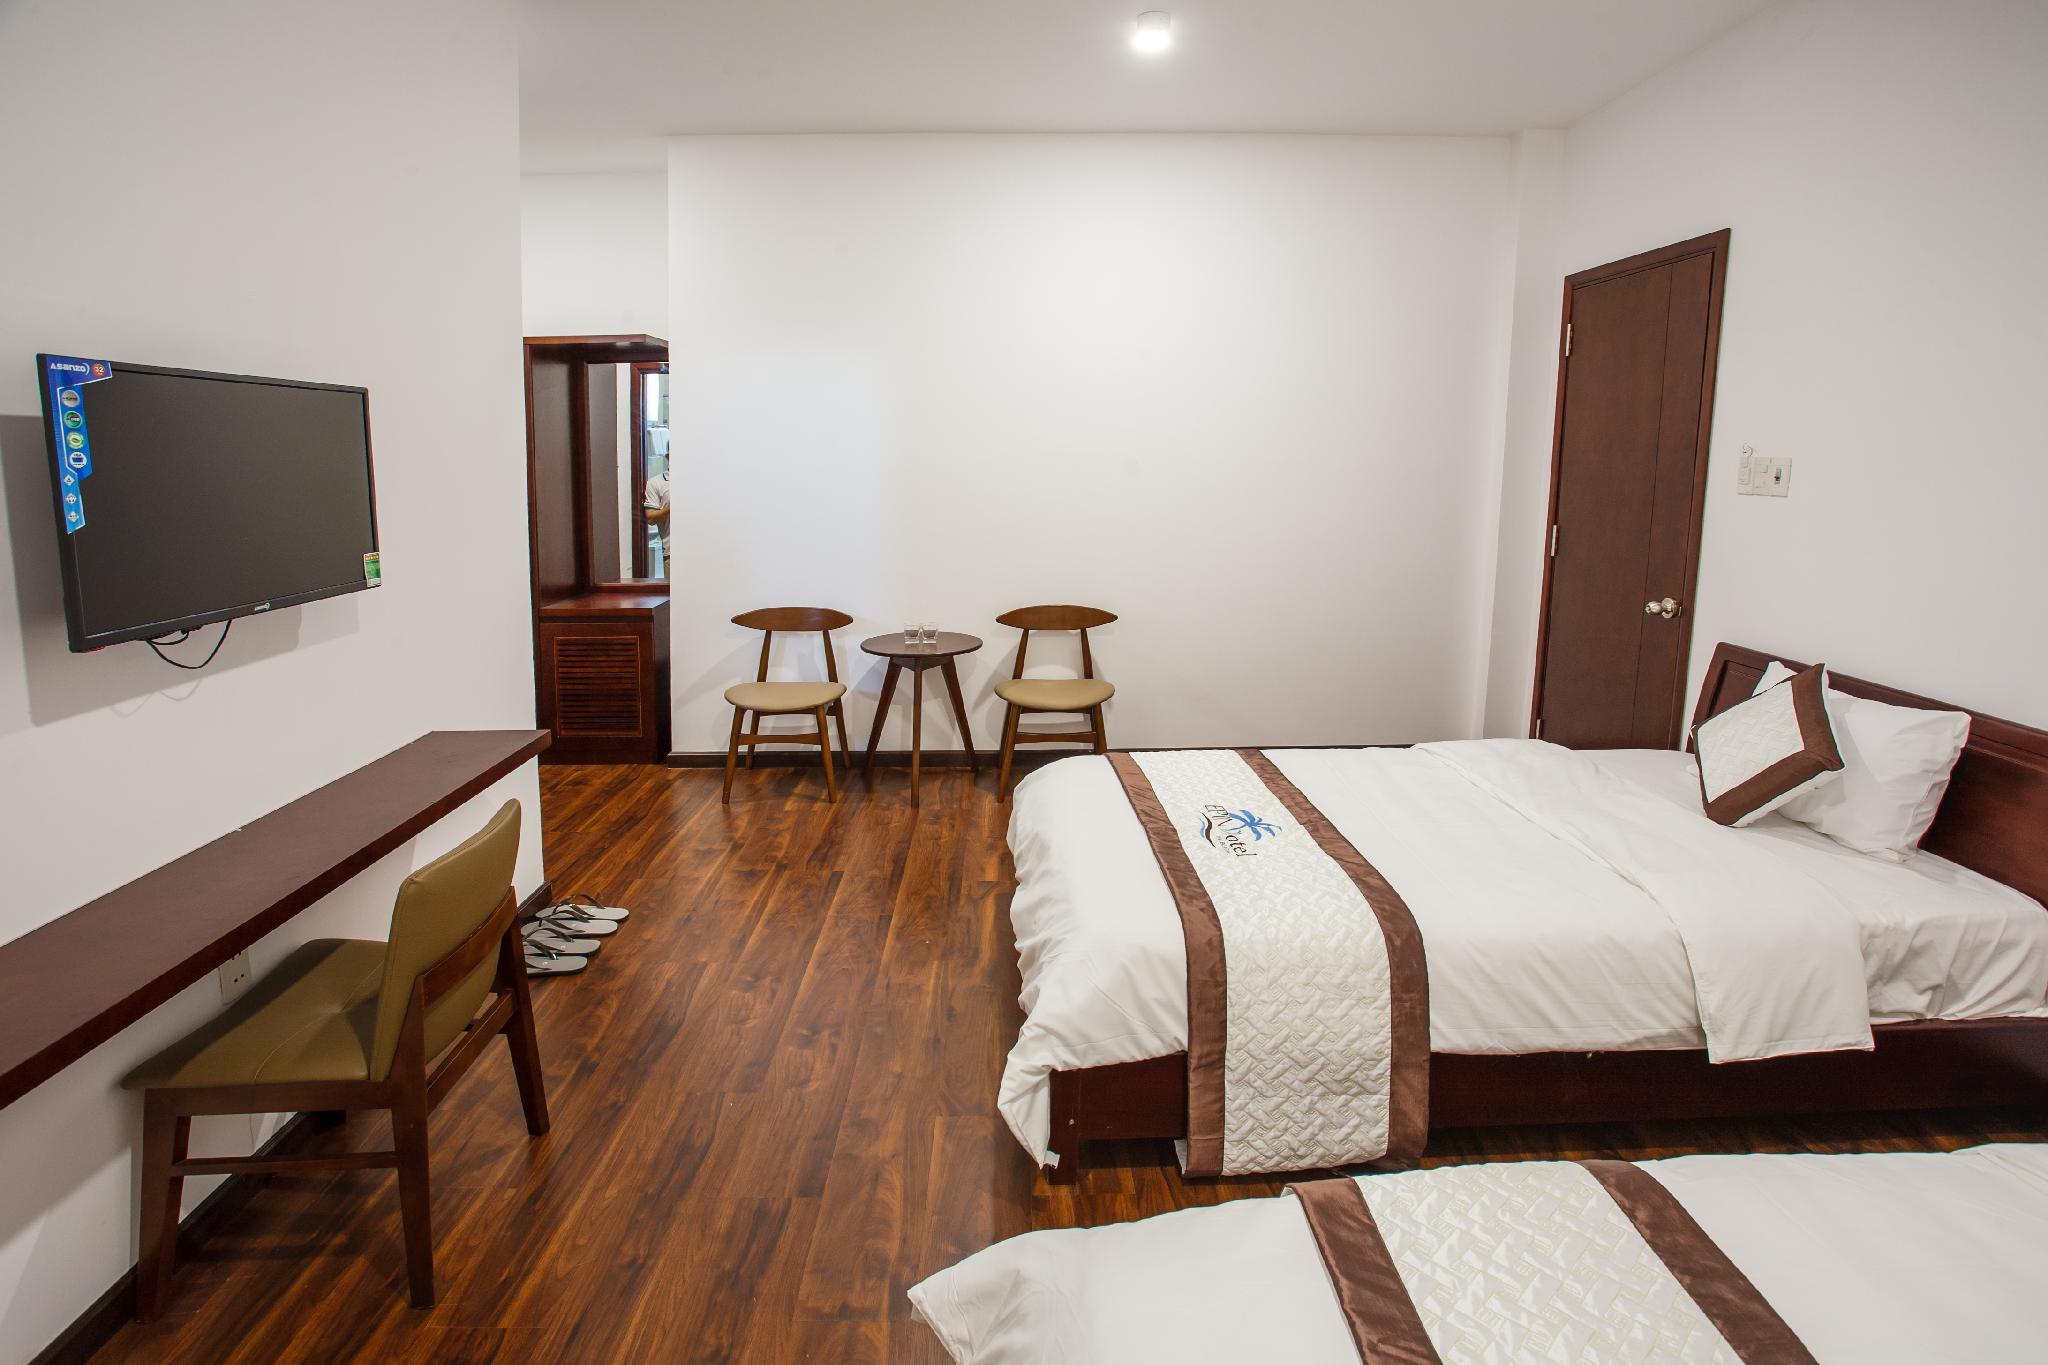 三人房(双人床+单人床) (Triple Room - 1 Double Bed + 1 Single Bed)